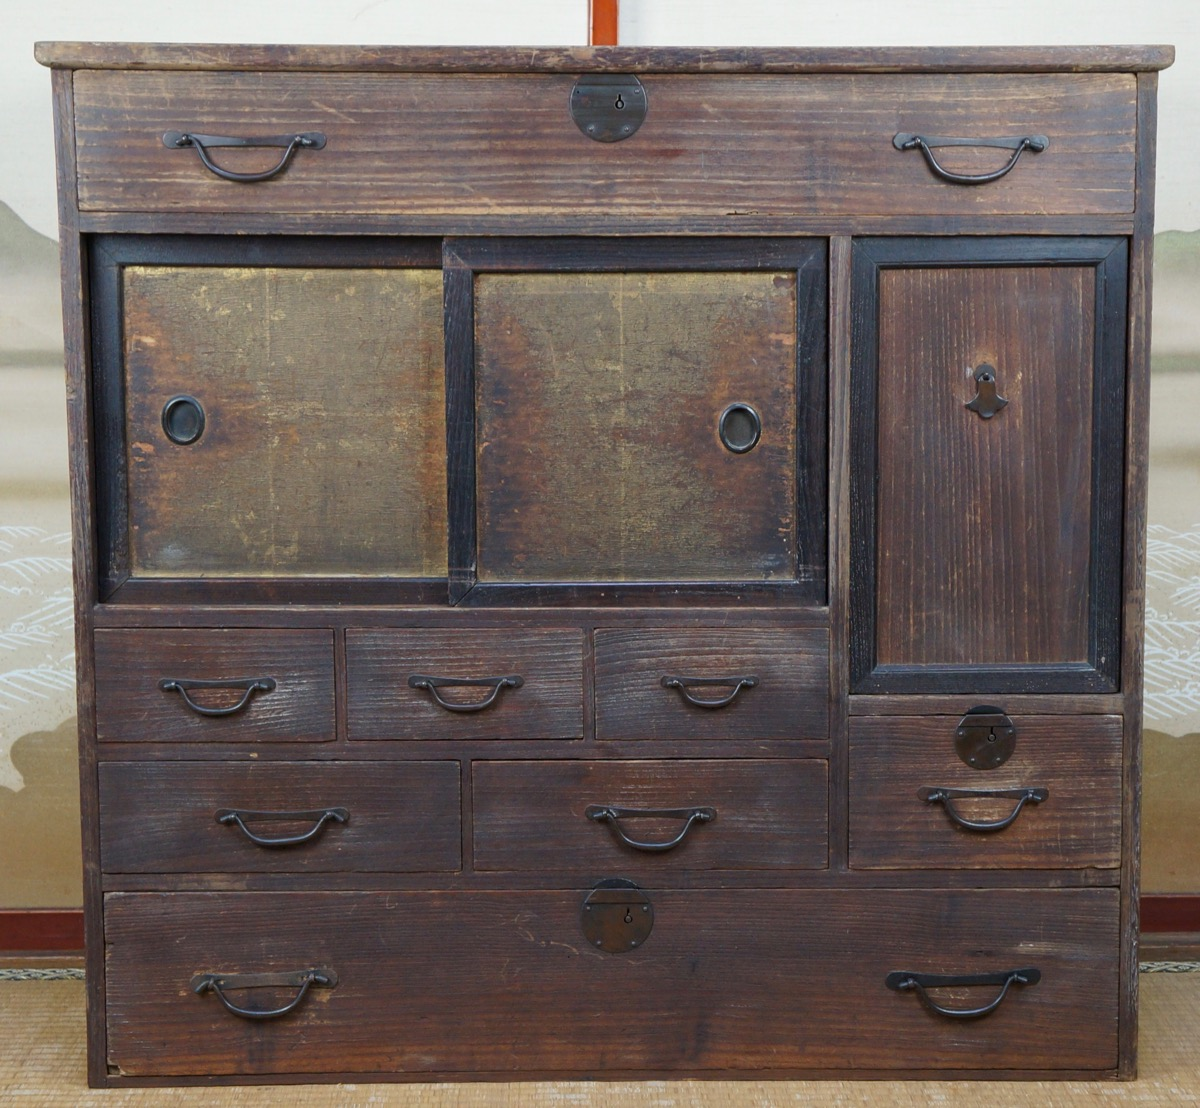 Materials: wood, bronze - Antique Chadansu Japanese Furniture 1900s Japan Cabinet Tansu Craft